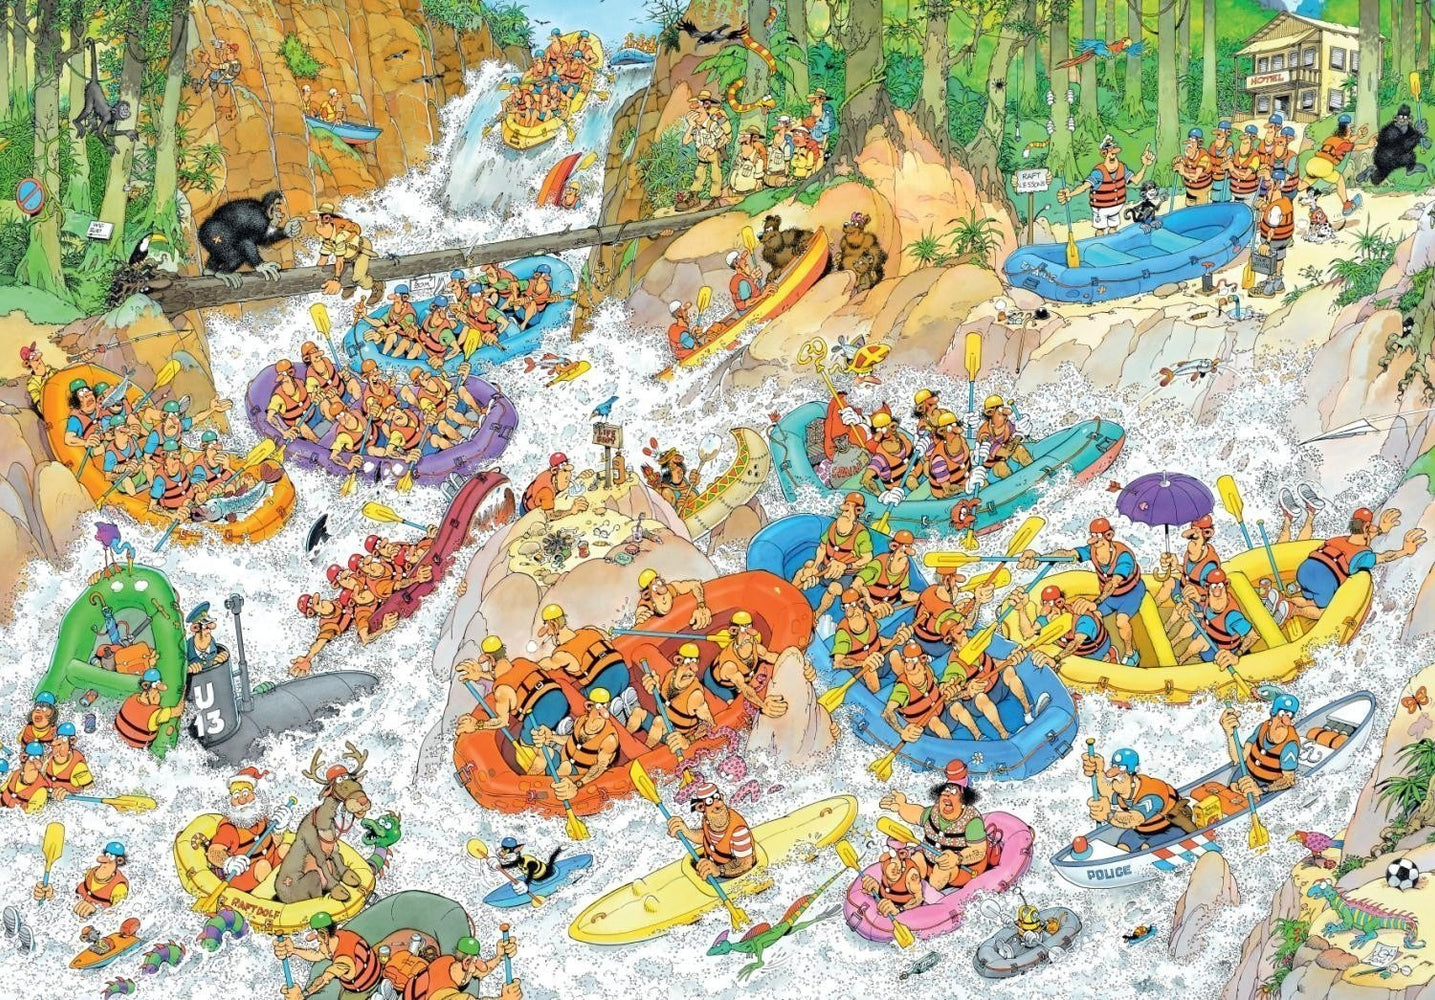 Jan van Haasteren Wild Water Rafting 3000 Piece Jigsaw Puzzle - All Jigsaw Puzzles